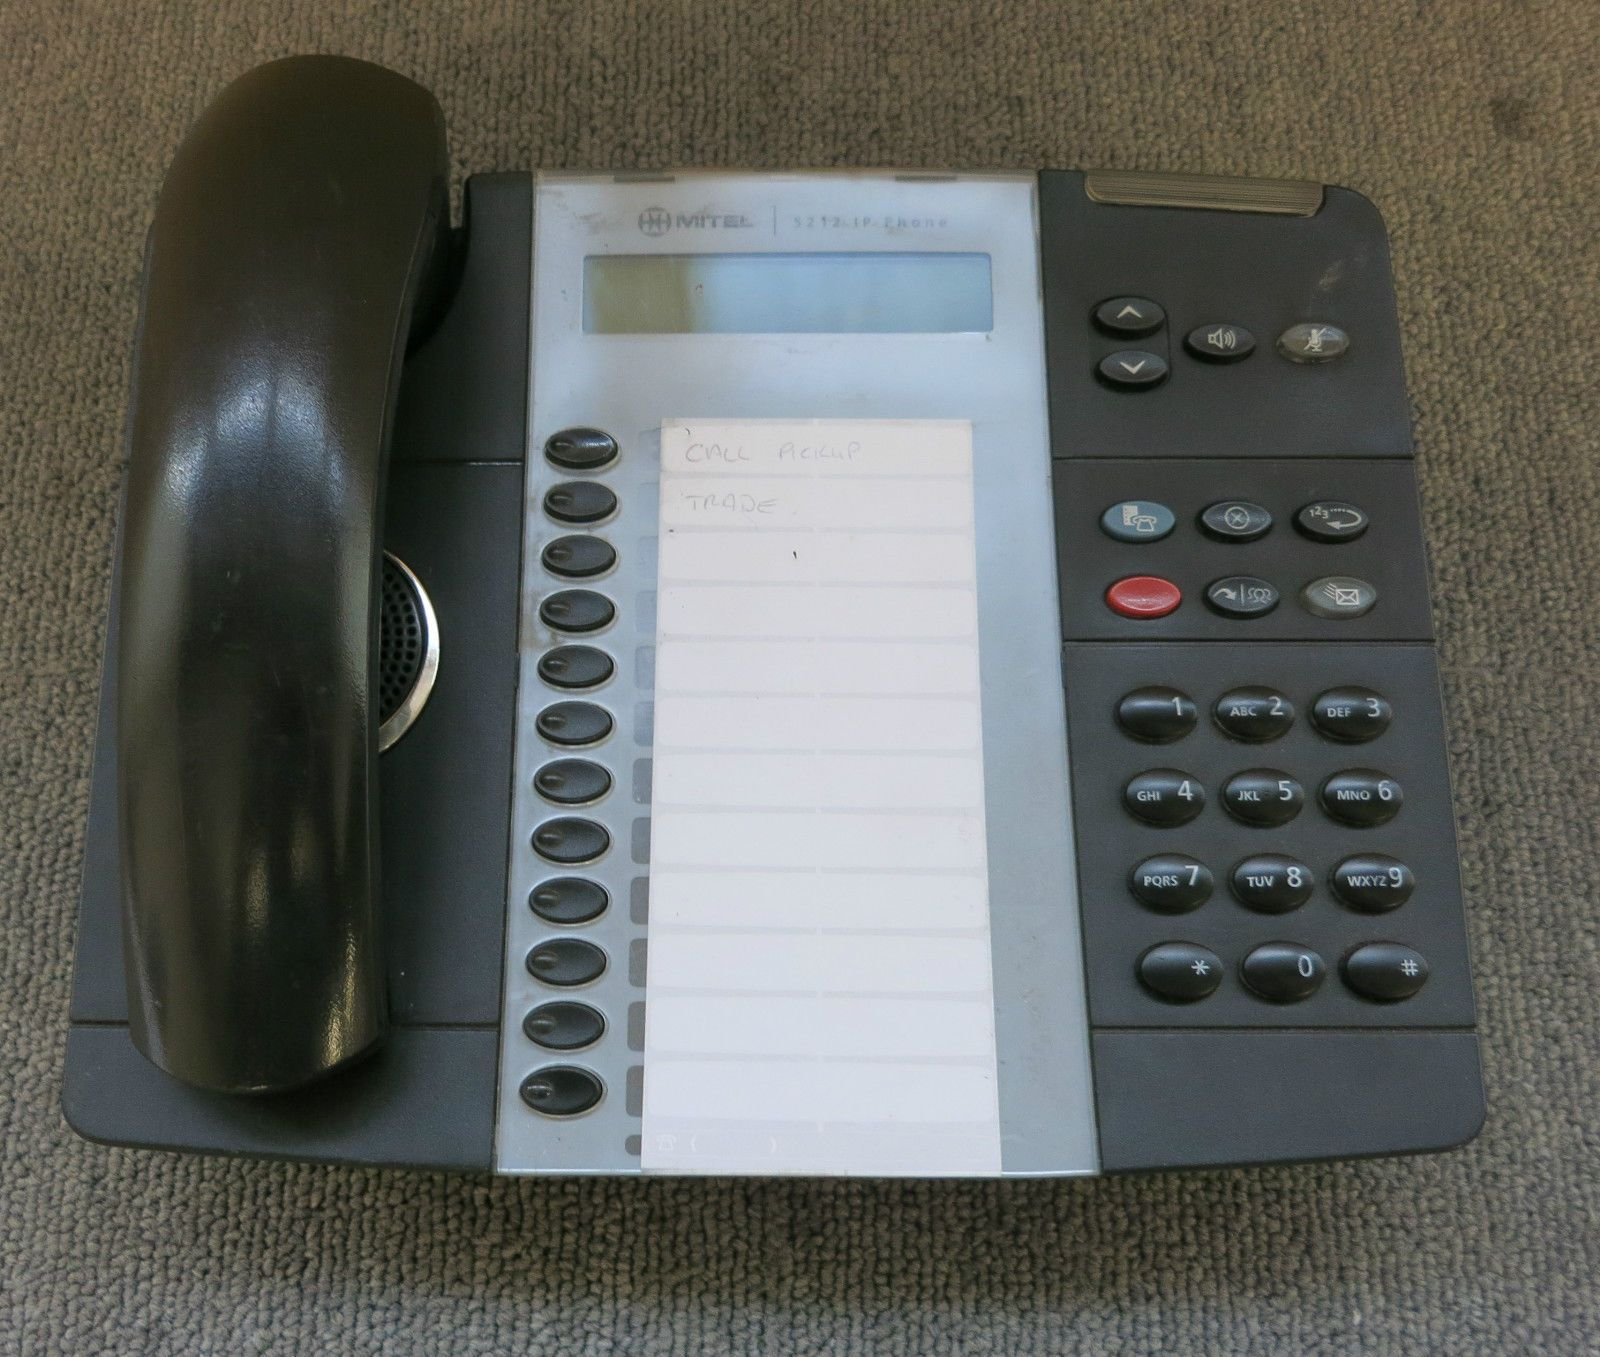 mitel 5212 ip phone manual